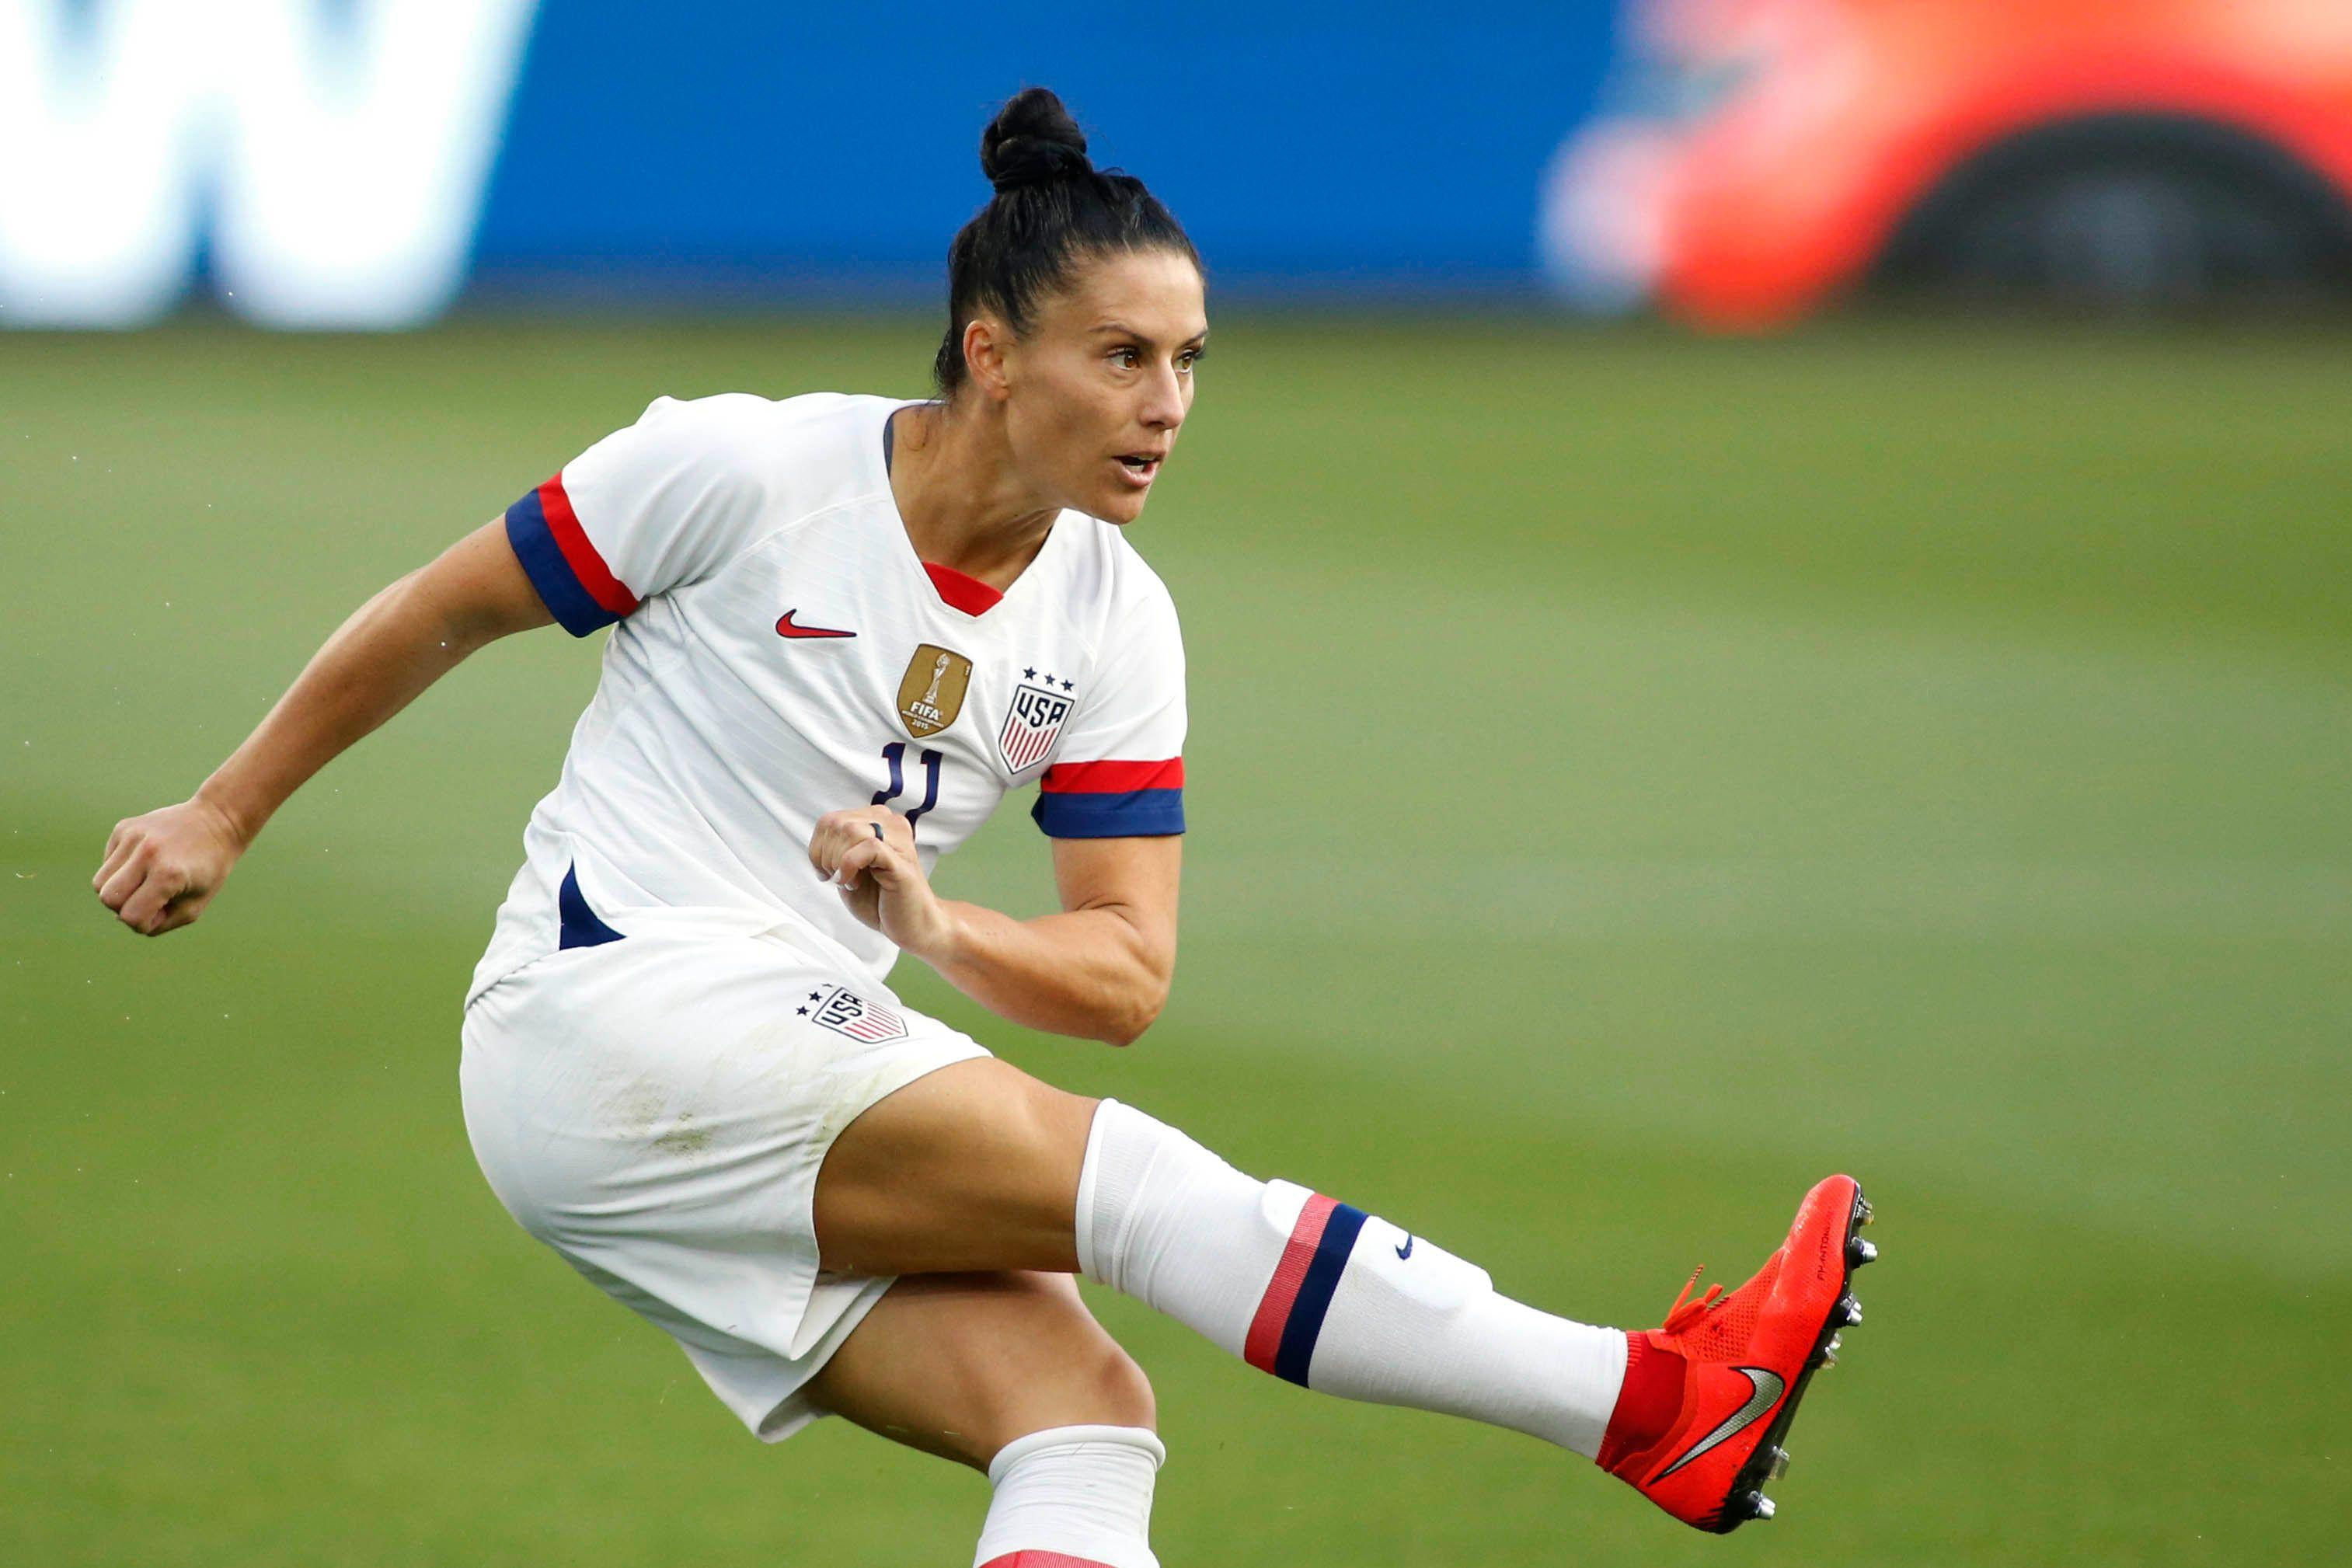 ee49828be8e Predicting the USWNT s World Cup roster  Will Ali Krieger make the cut